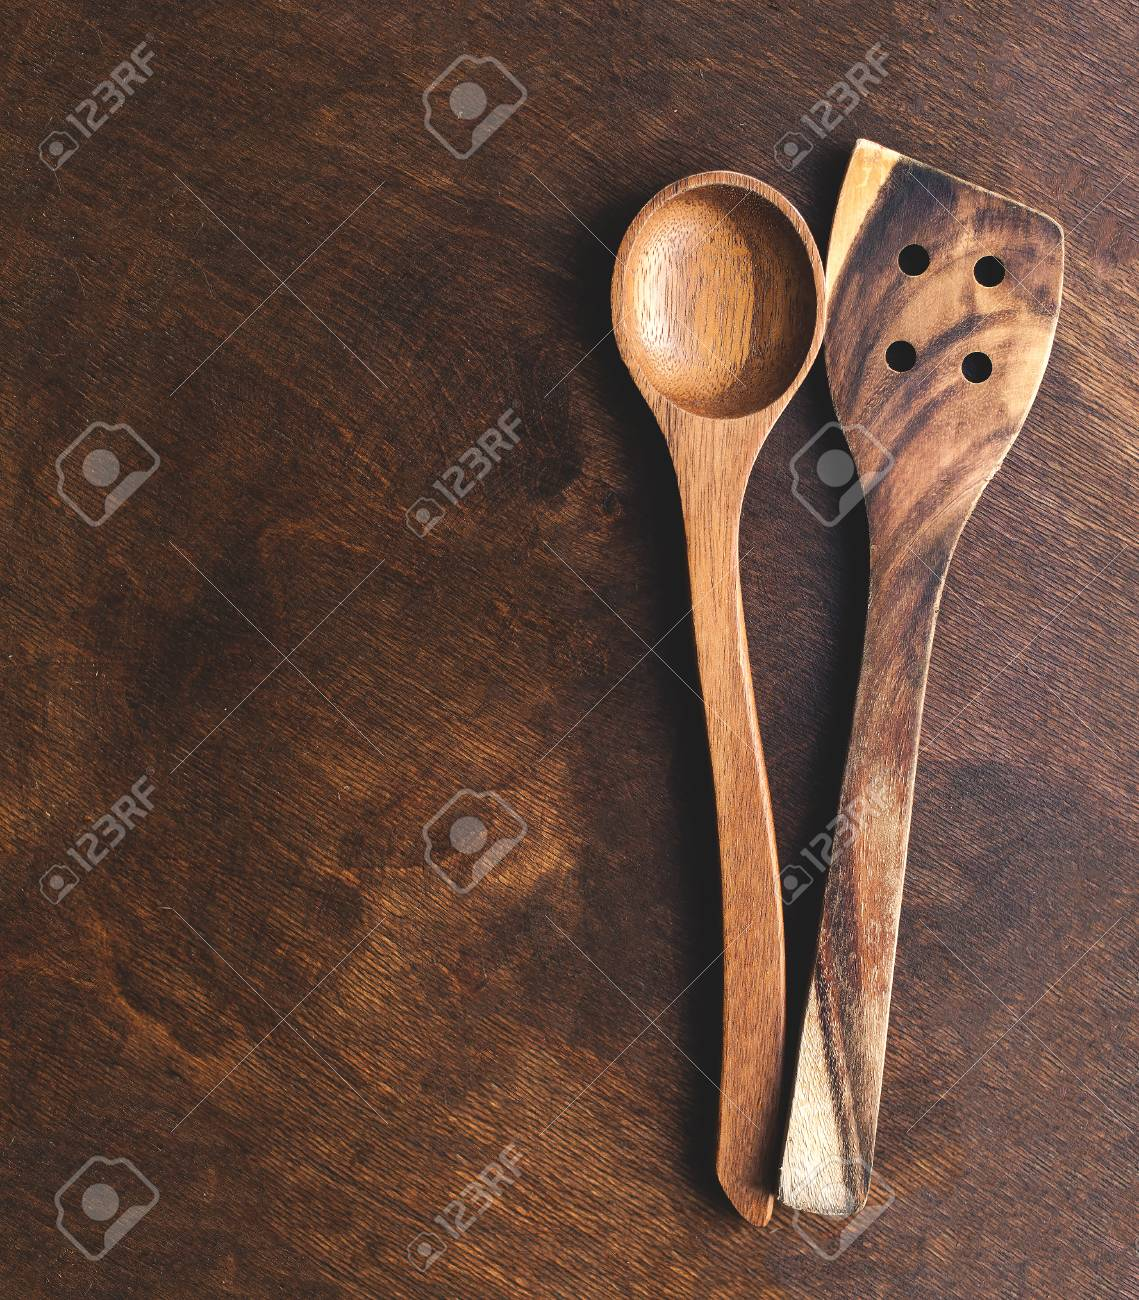 kitchen wooden utensils menards sinks over vintage background with copy space top view spoon and